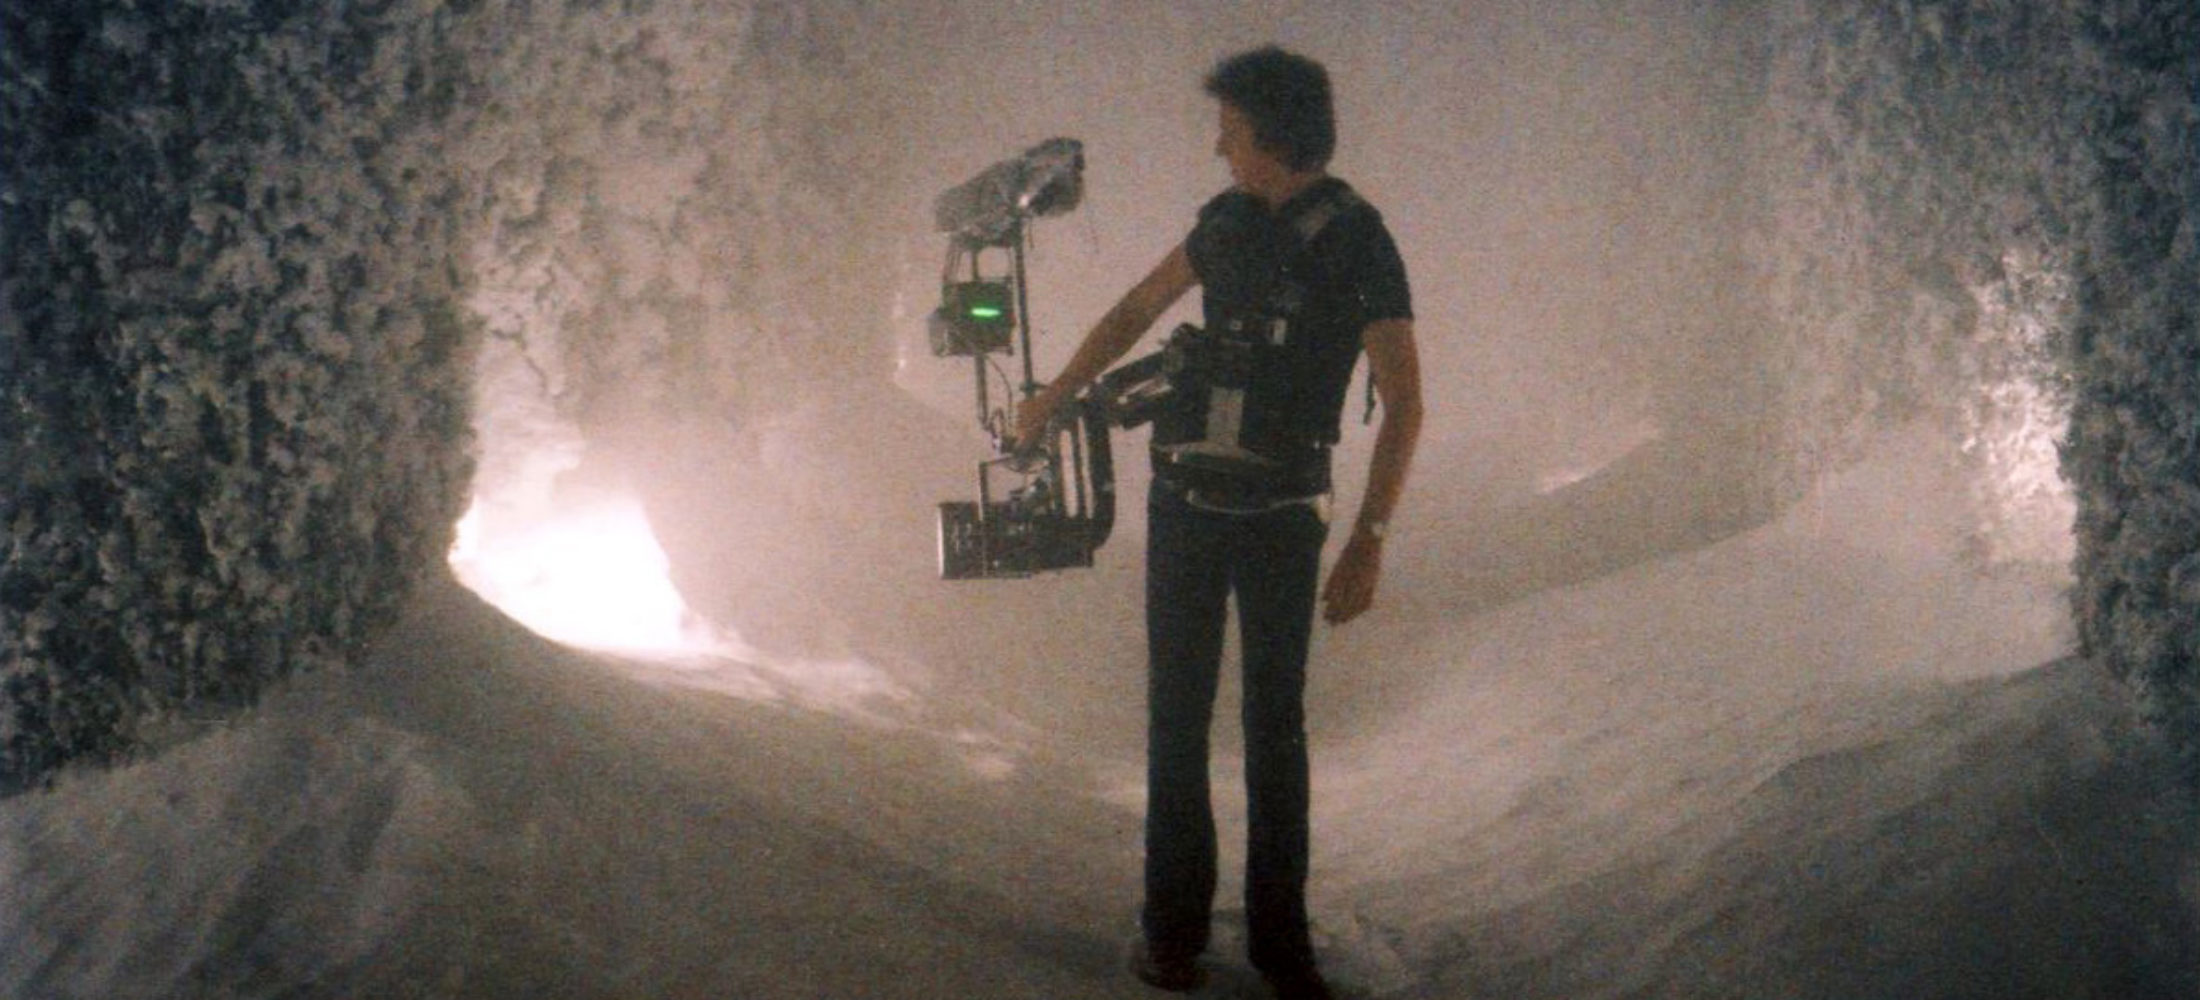 Don't let renting a Steadicam scare you